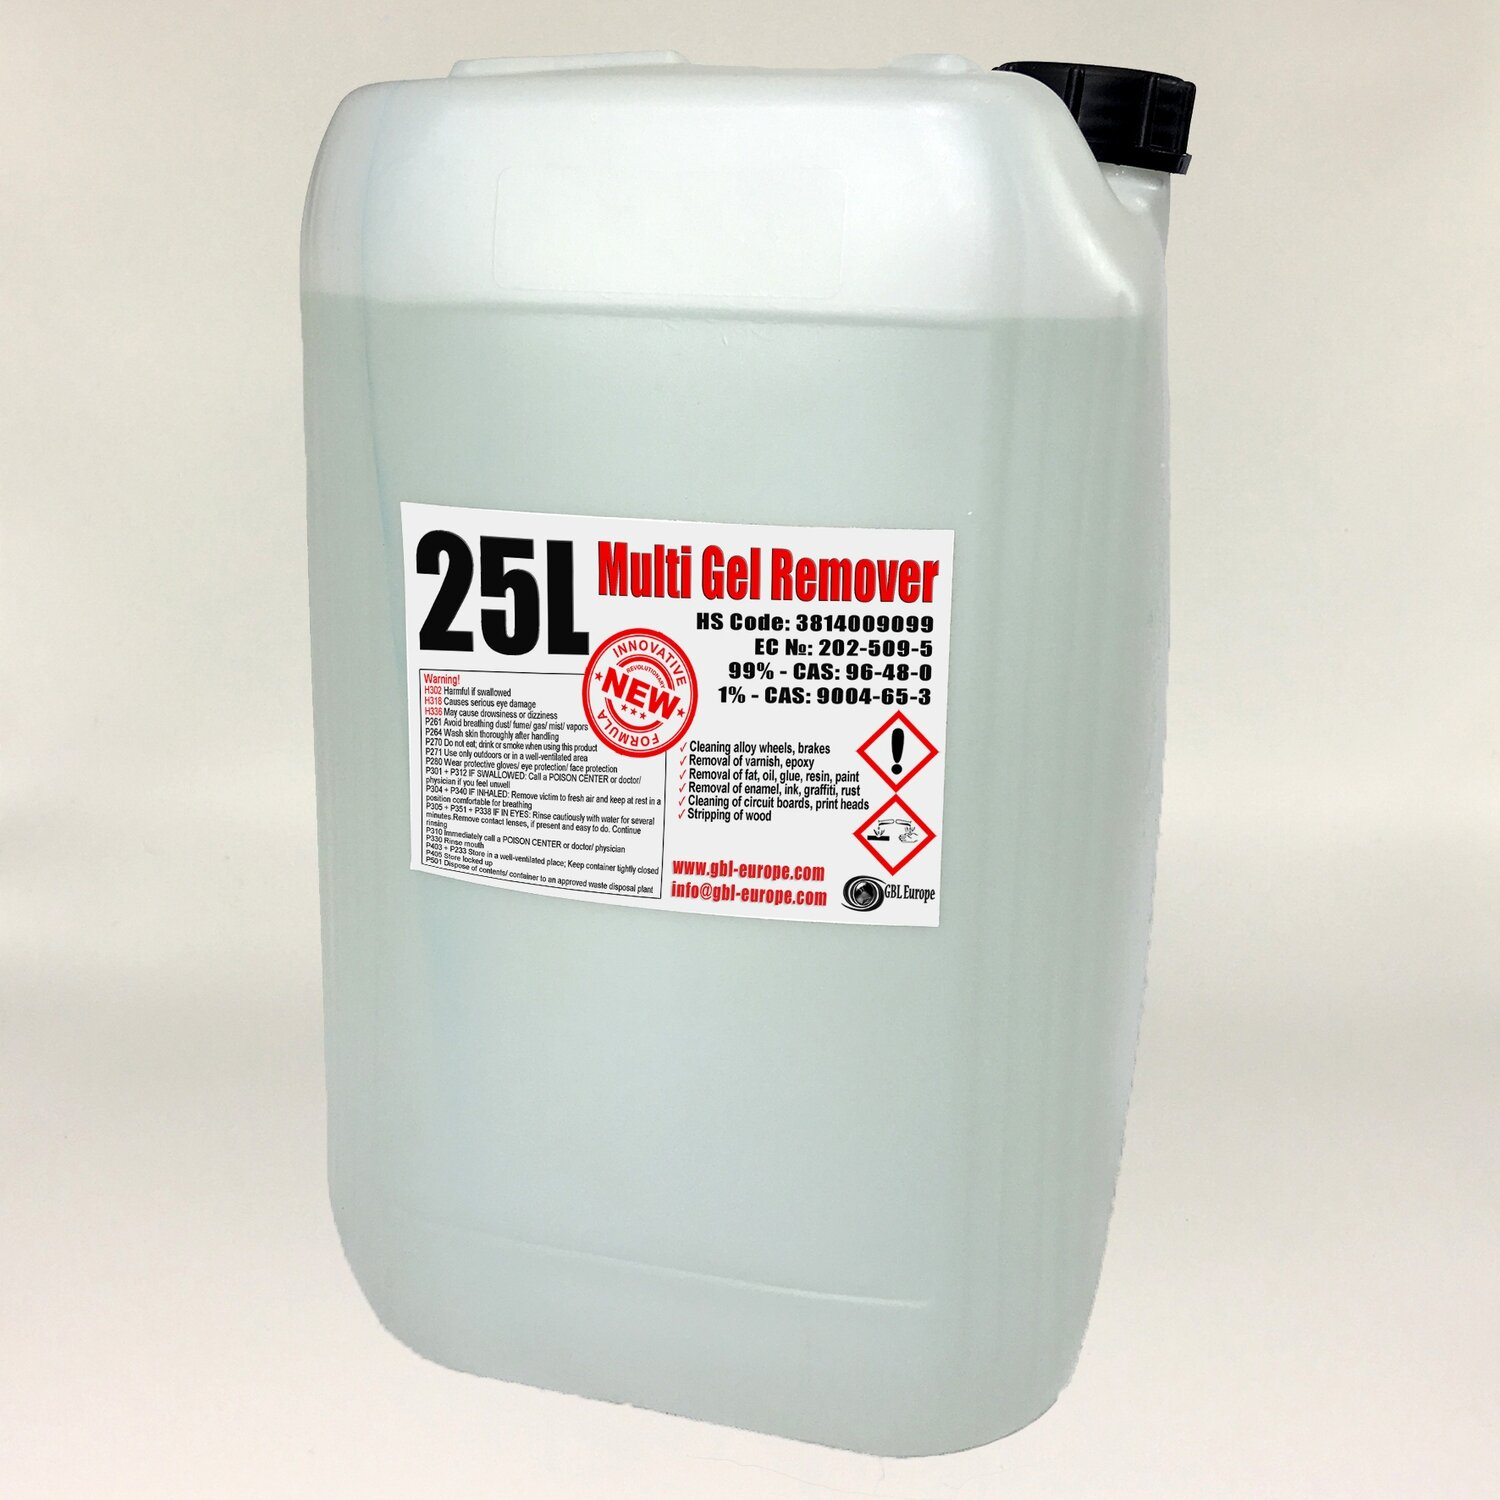 Multi Gel Remover® 4x 25.000 ml Canister